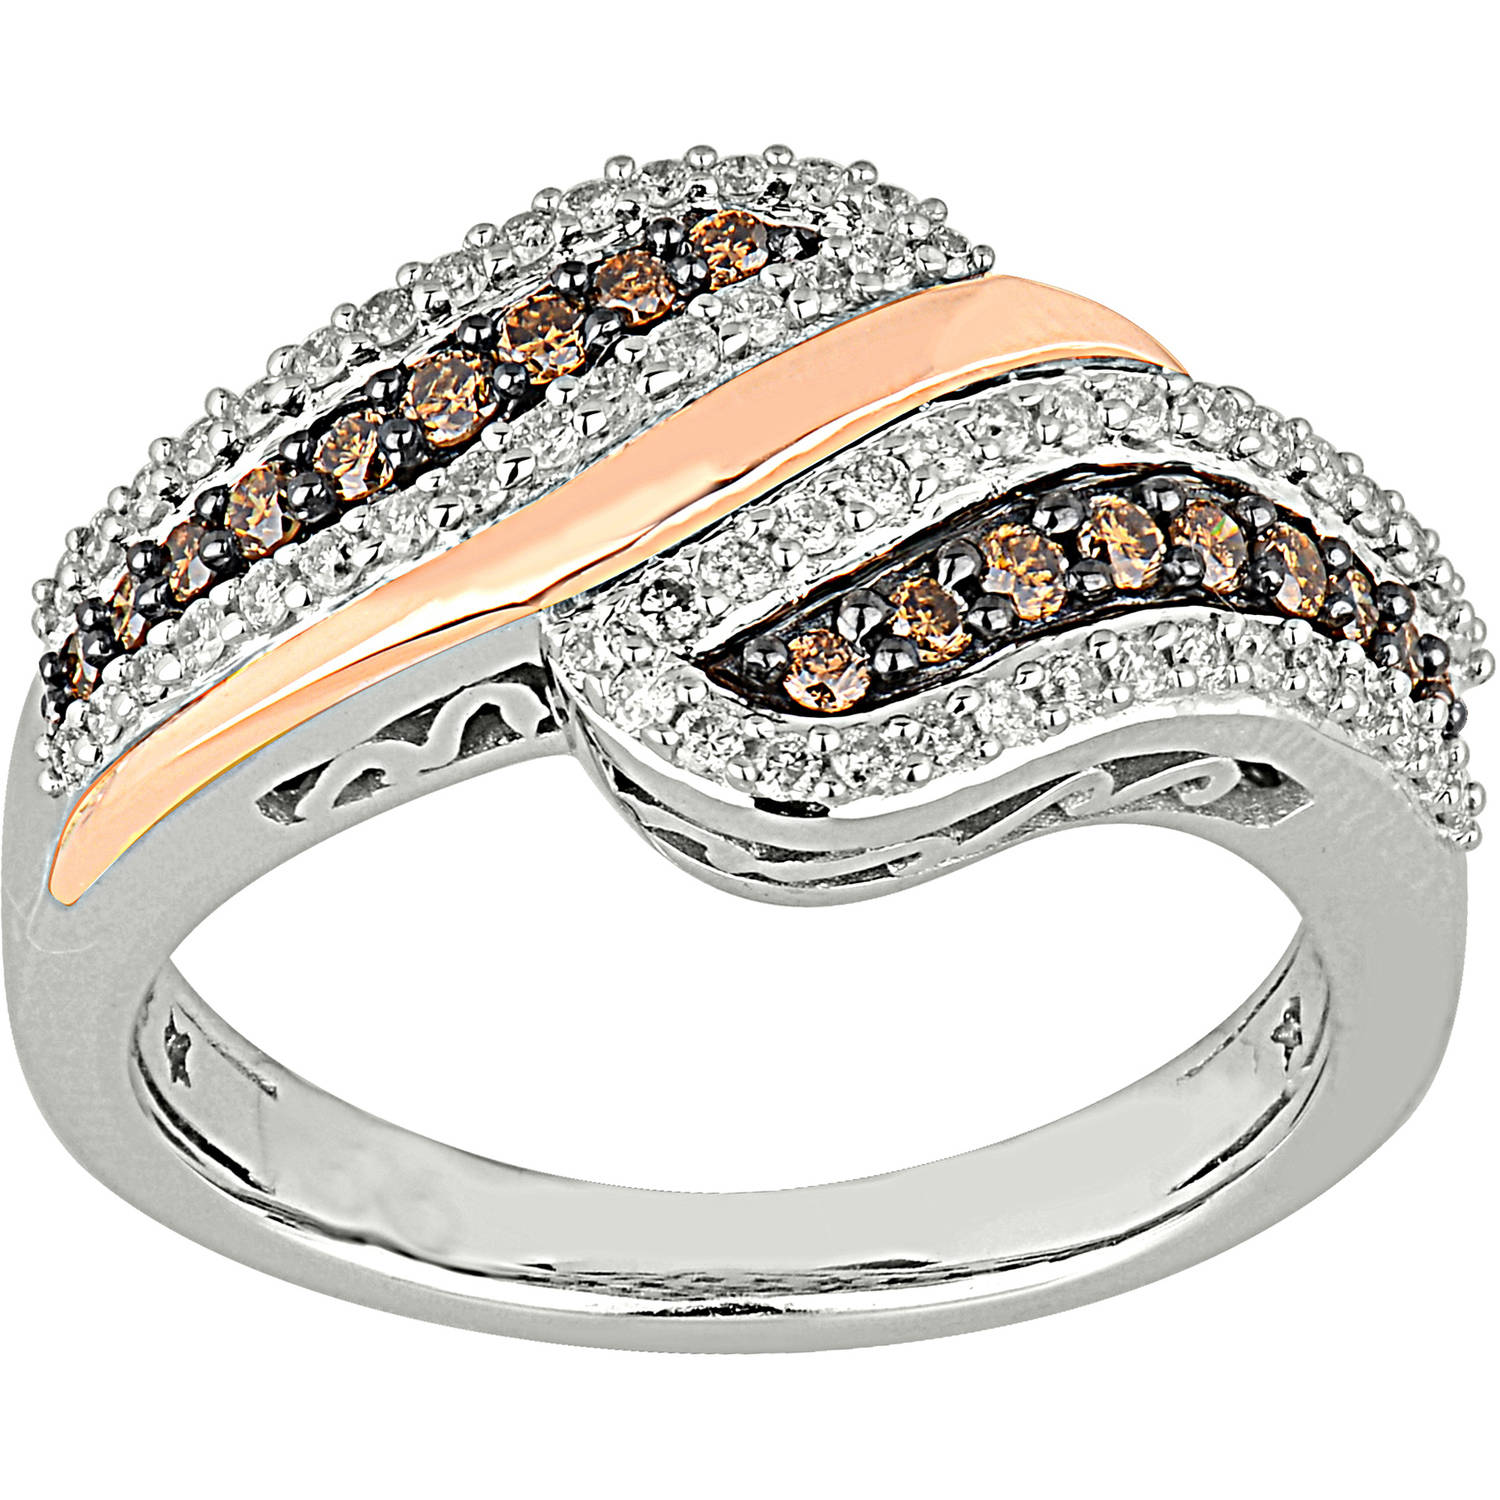 1/2 Carat T.W. Champagne and White Diamond 10kt Rose and White Gold By-Pass Ring